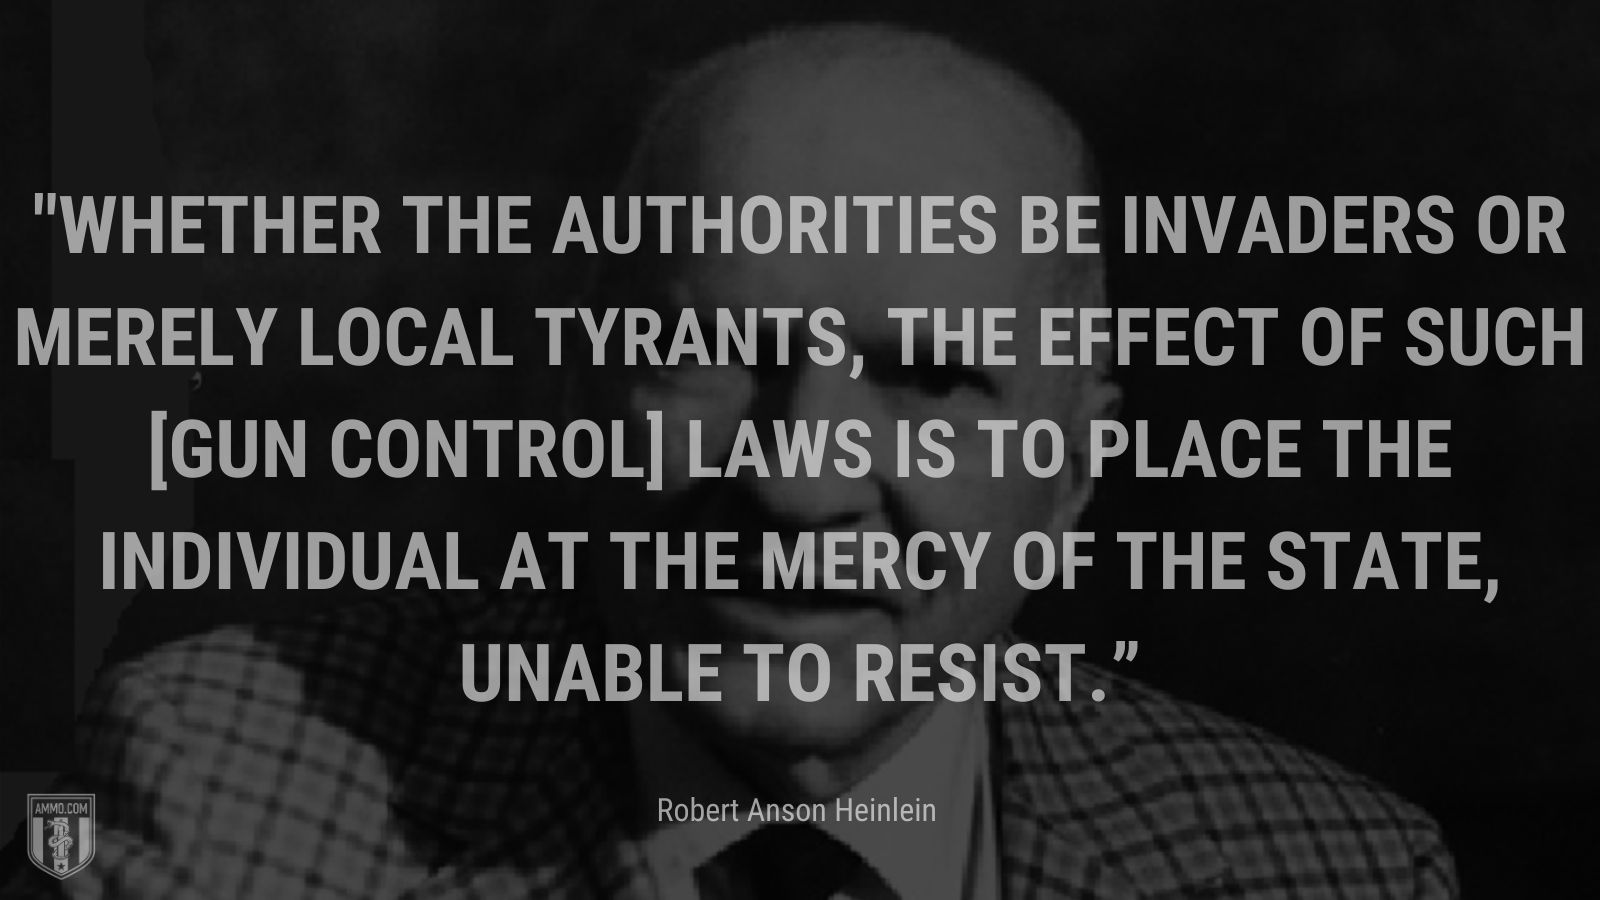 """""""Whether the authorities be invaders or merely local tyrants, the effect of such [gun control] laws is to place the individual at the mercy of the state, unable to resist."""" - Robert Anson Heinlein"""